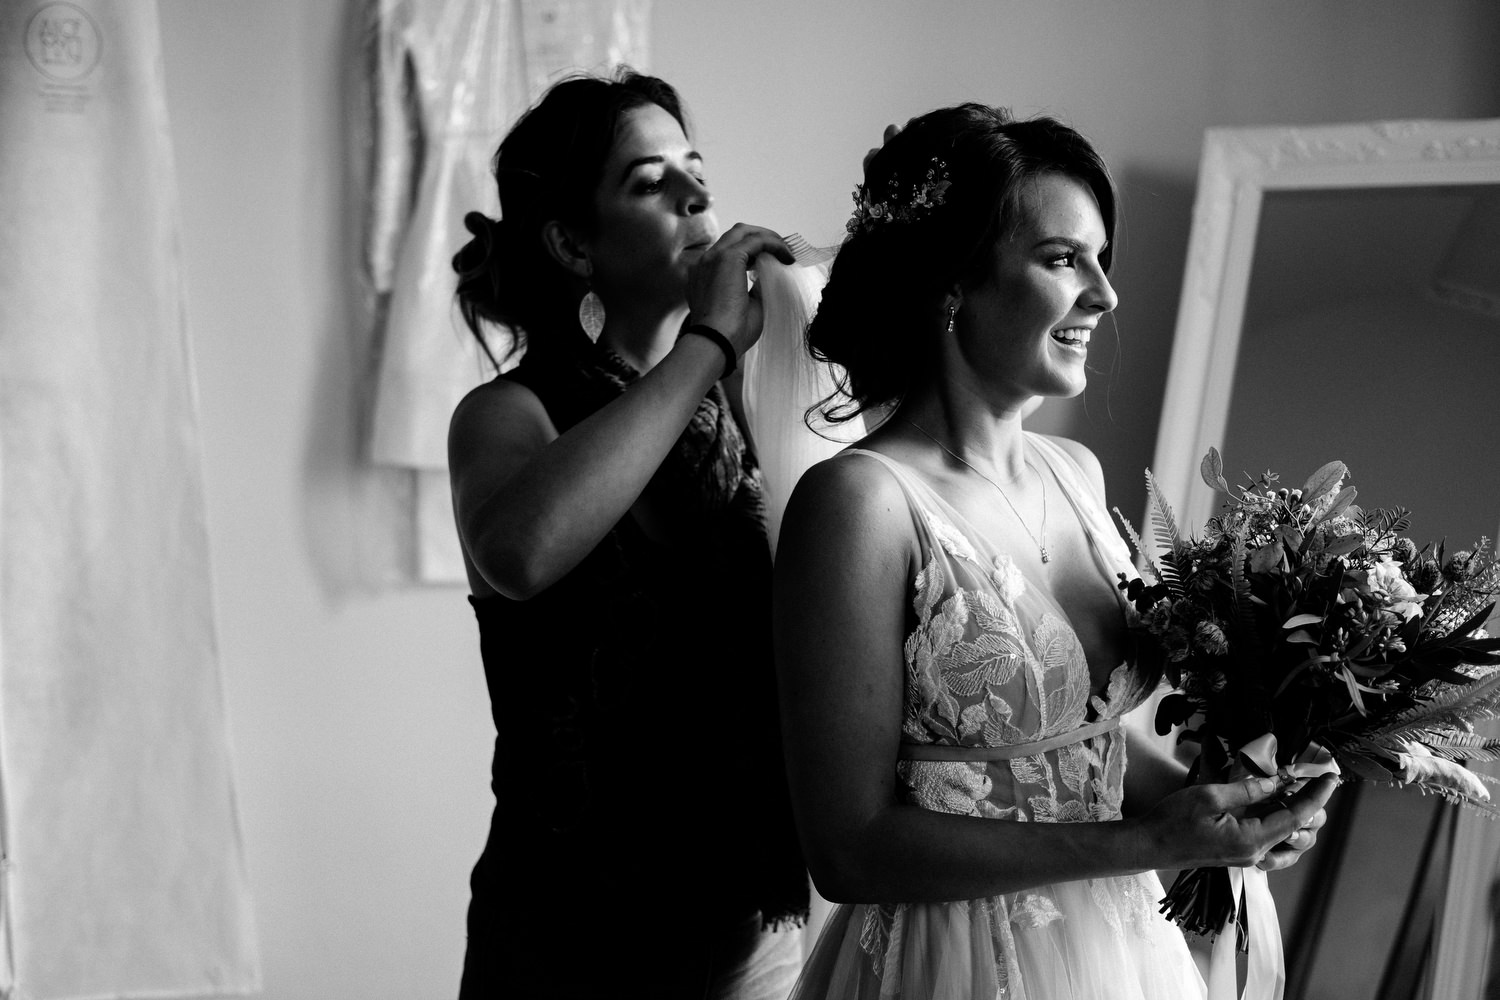 dmp0288_gay_brides_samesex_weddingdress_laois_ireland_preparation_wedding